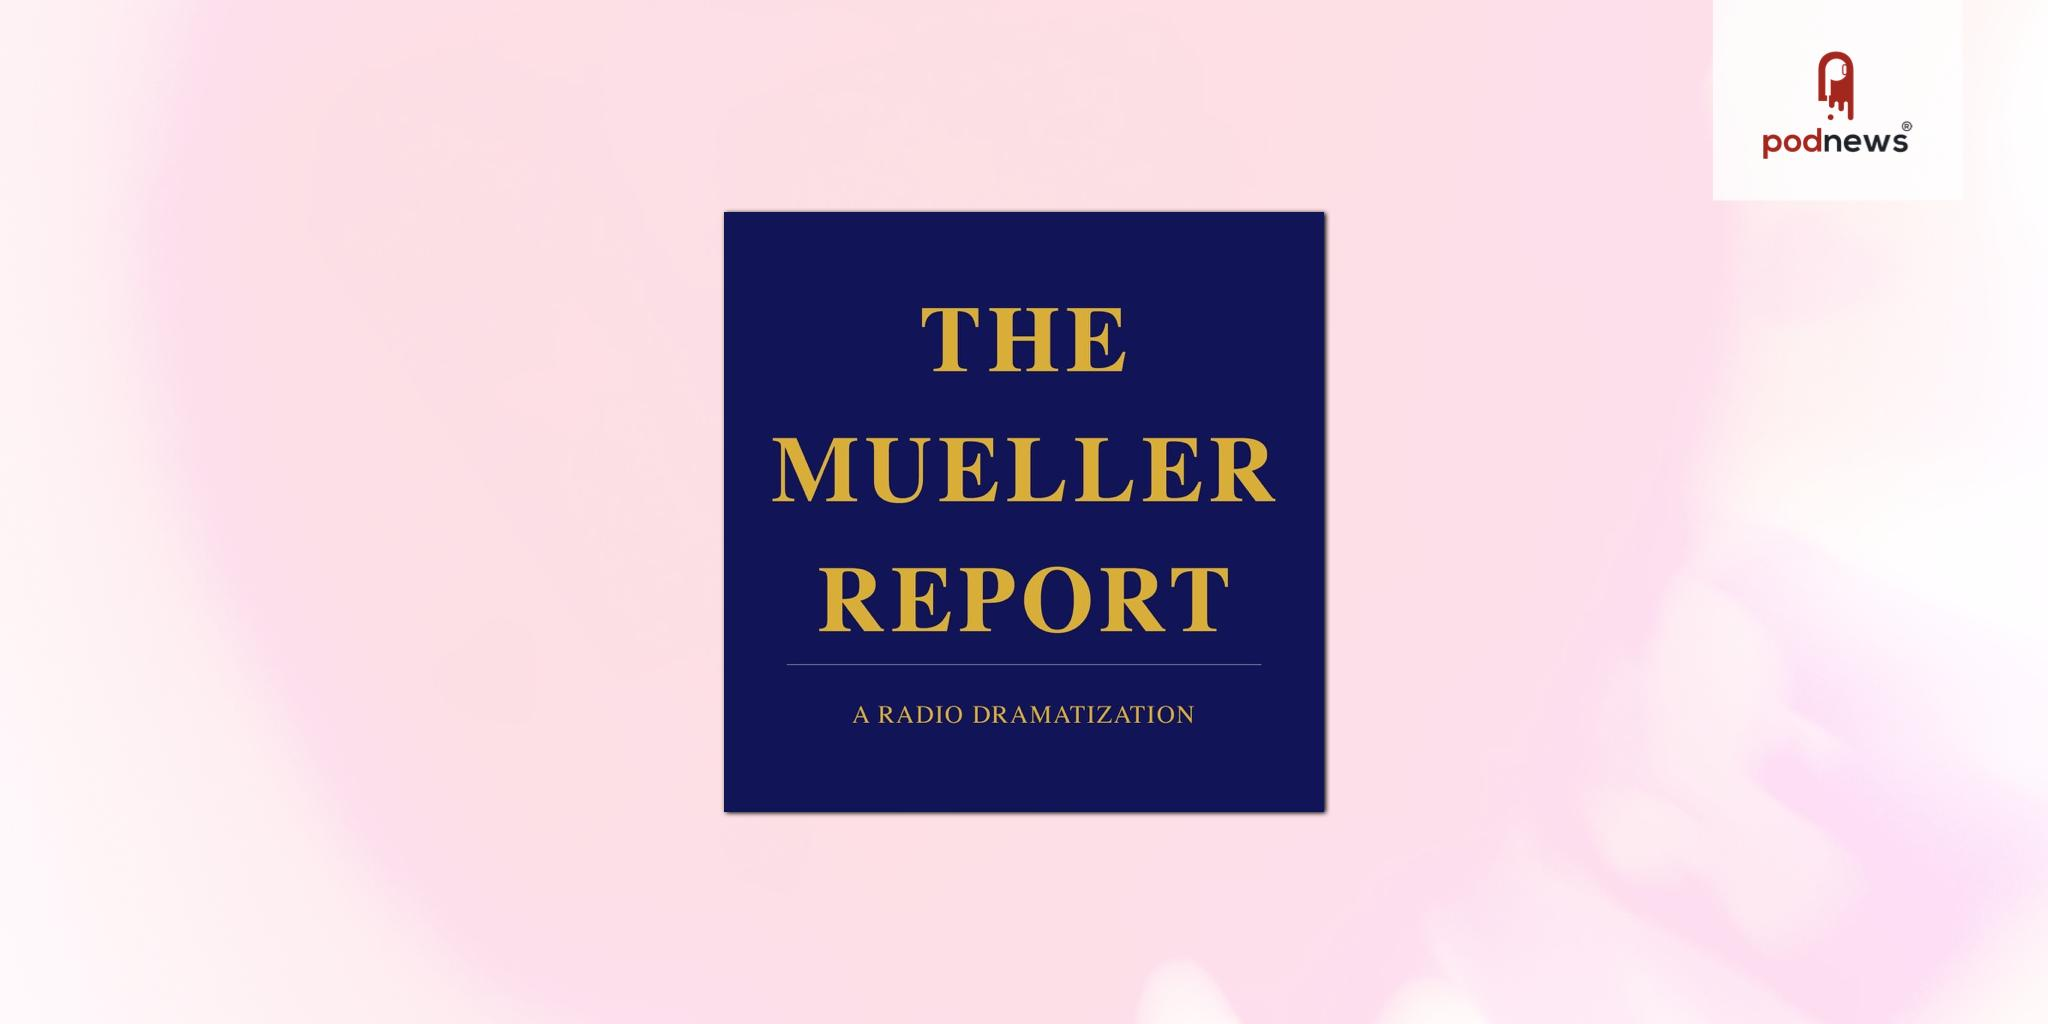 The Mueller Report: A Radio Dramatization